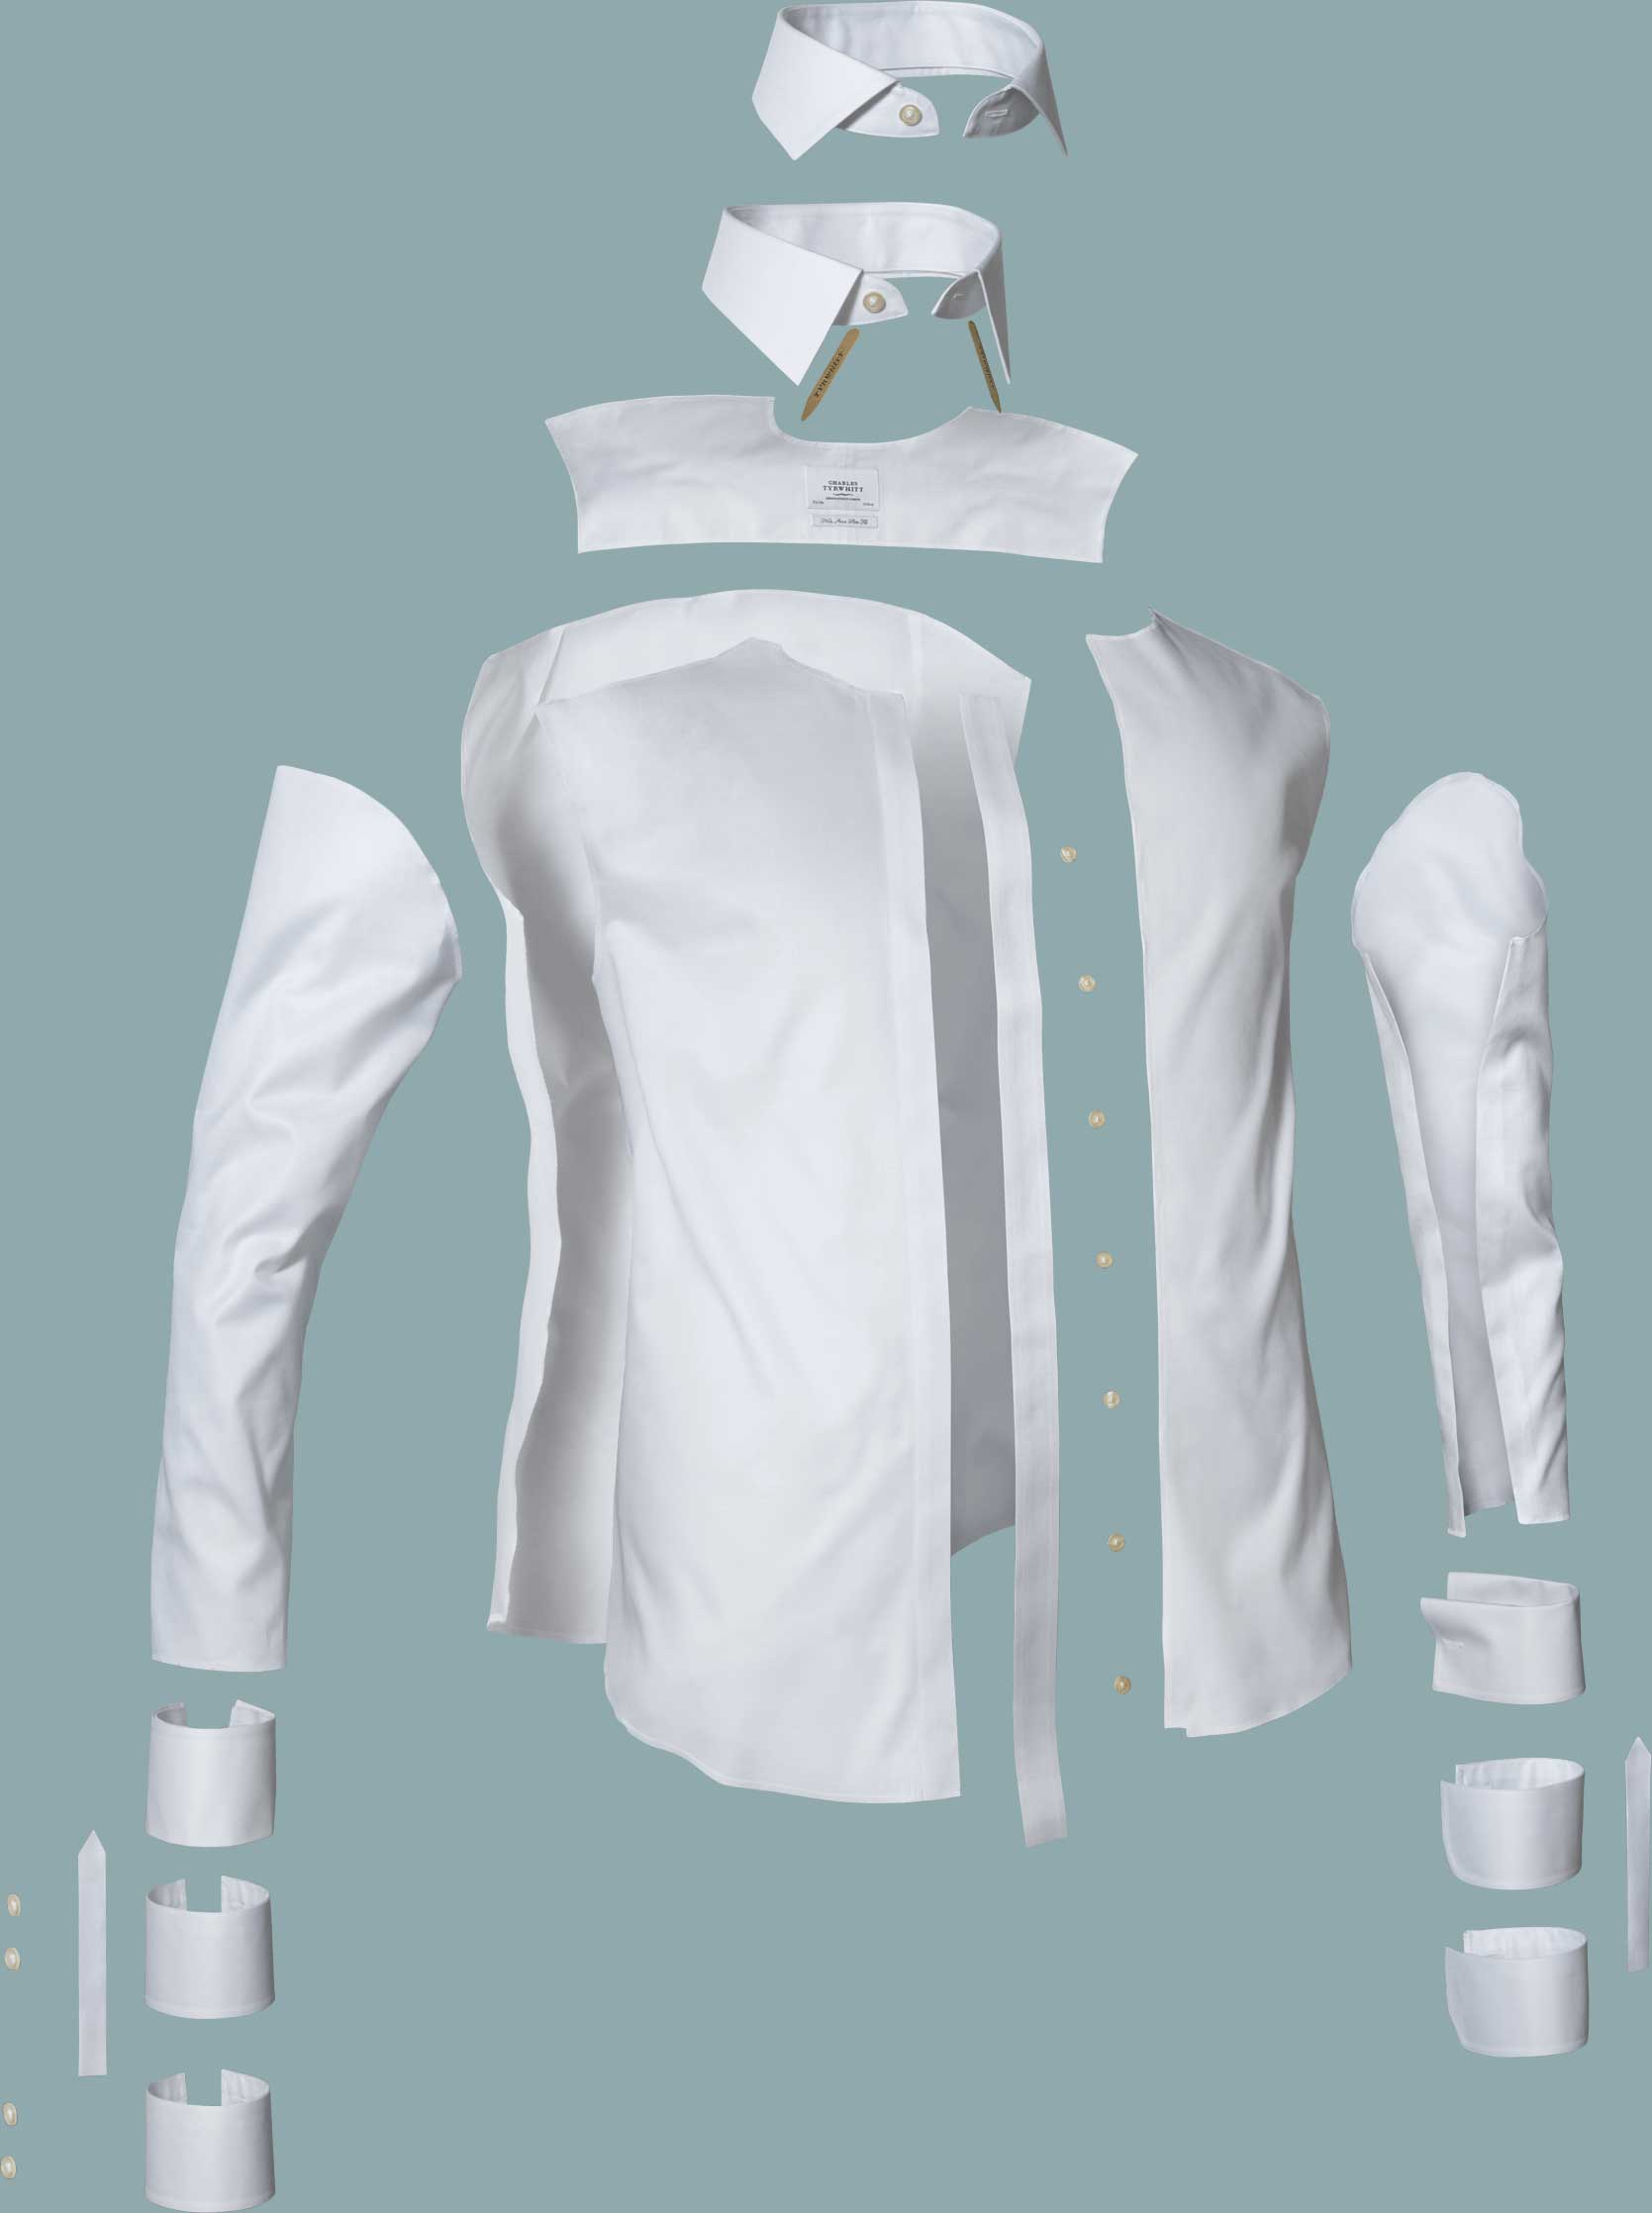 structure of a shirt